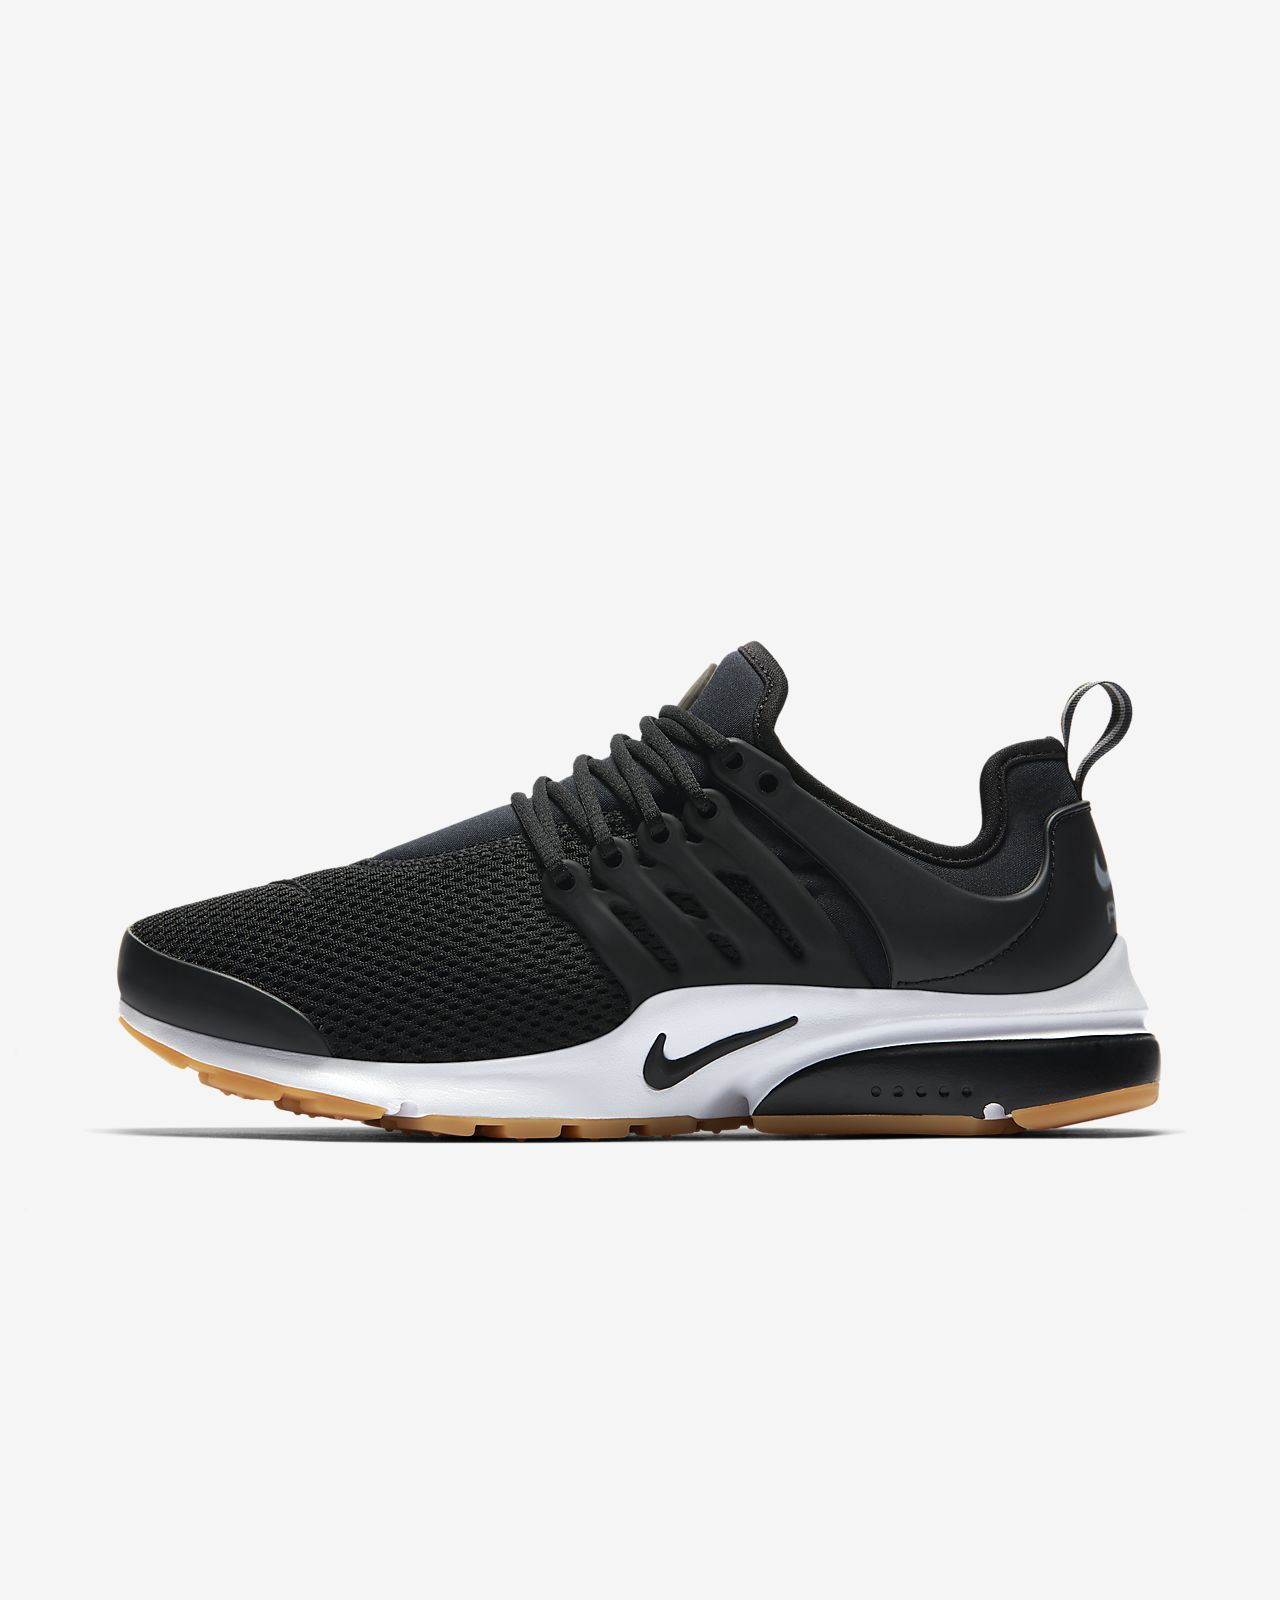 watch 4075a eddf3 ... Nike Air Presto Women s Shoe